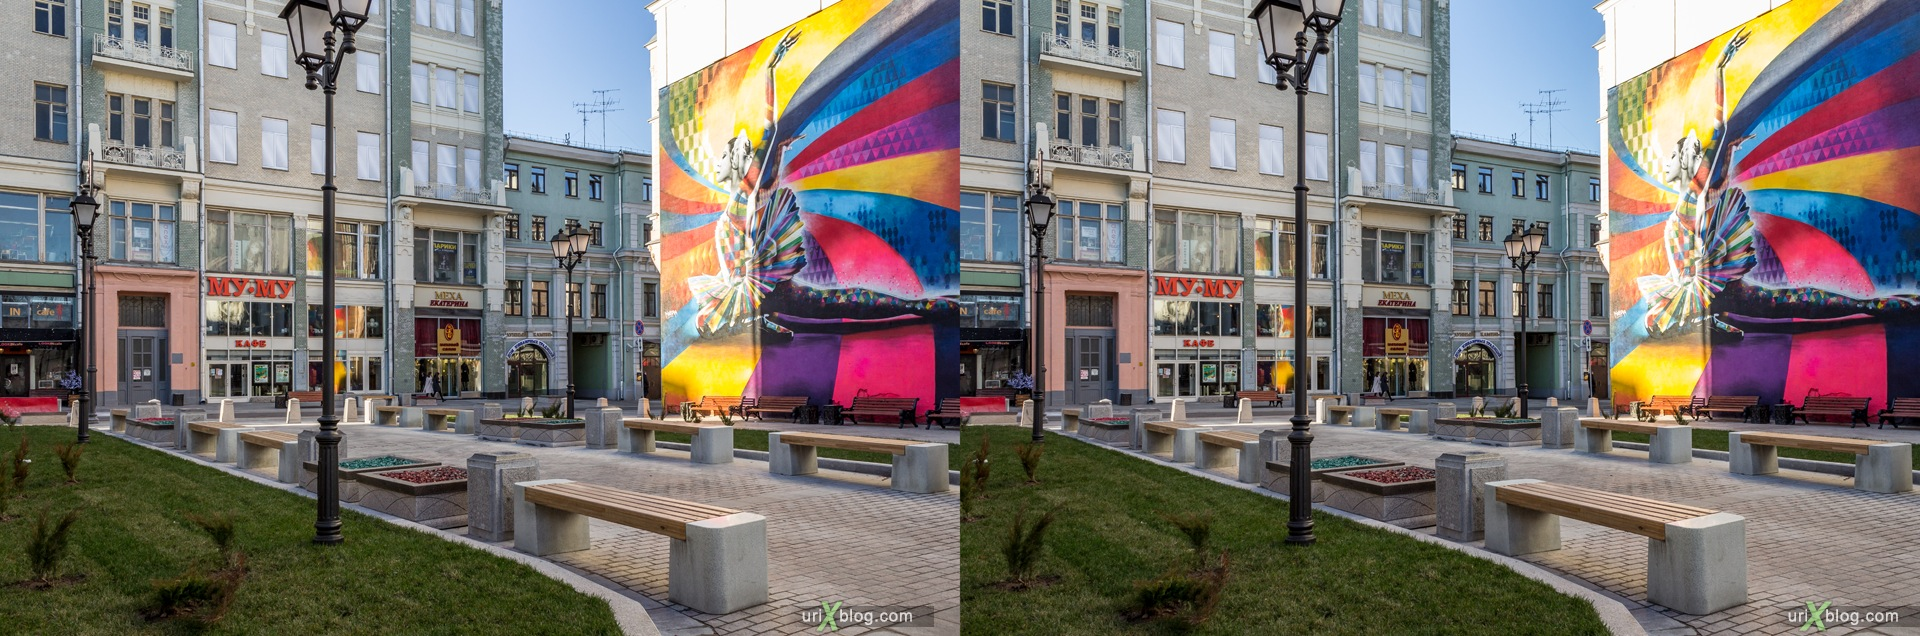 2013, Moscow, Russia, Bolshaya Big Dmitrovka, street, new pedestrian zone, 3D, stereo pair, cross-eyed, crossview, cross view stereo pair, stereoscopic